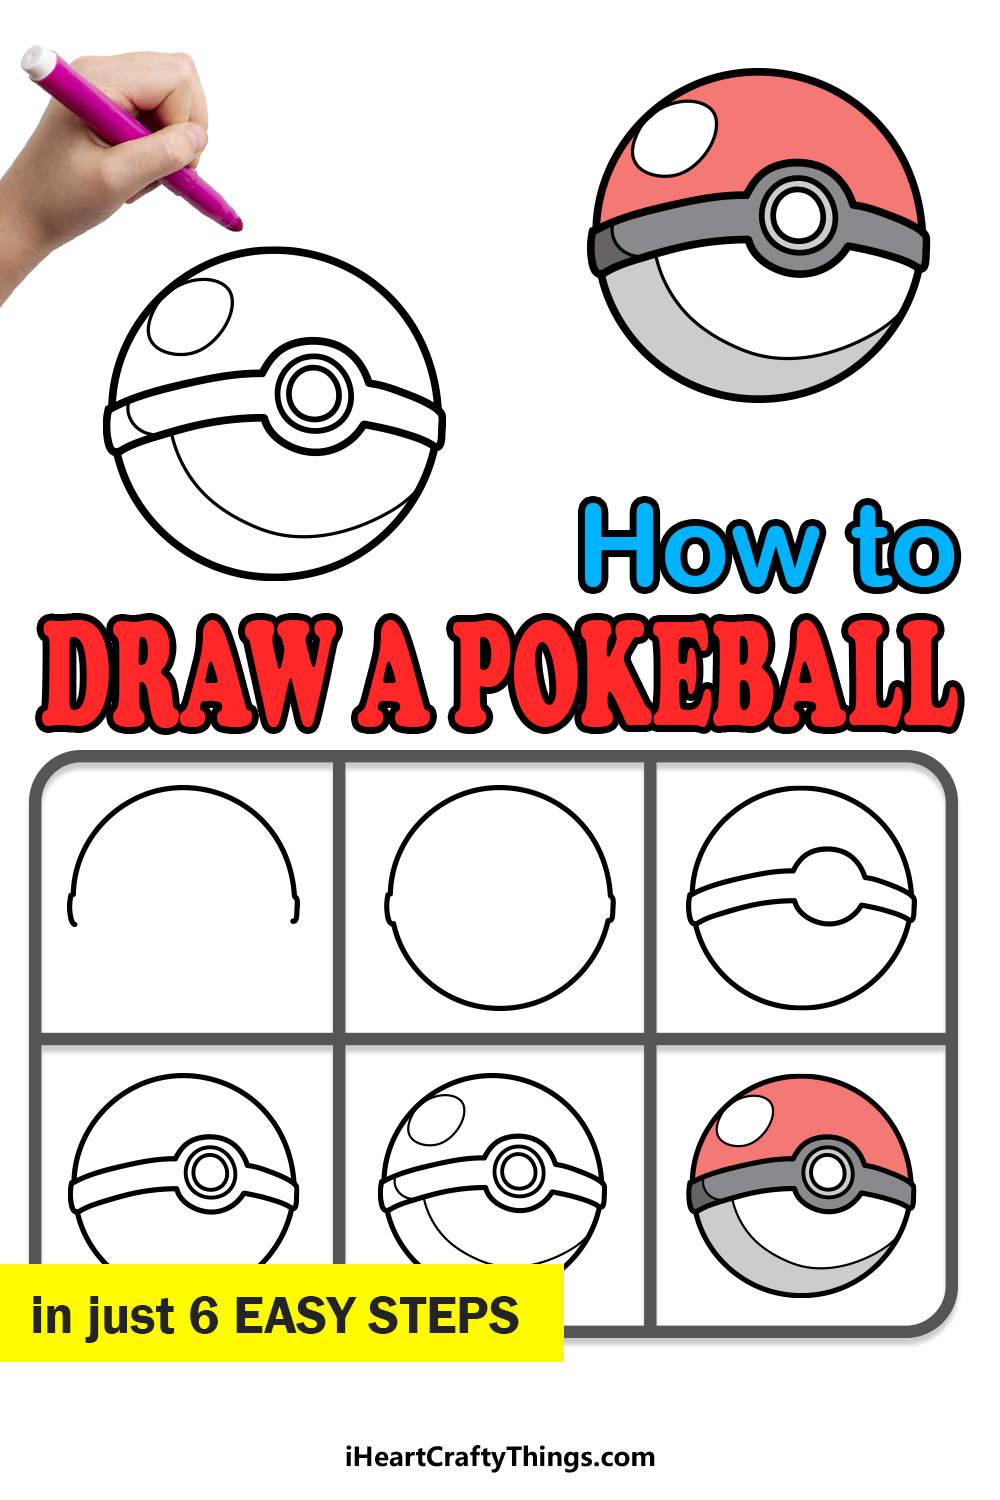 how to draw a pokeball in 6 easy steps